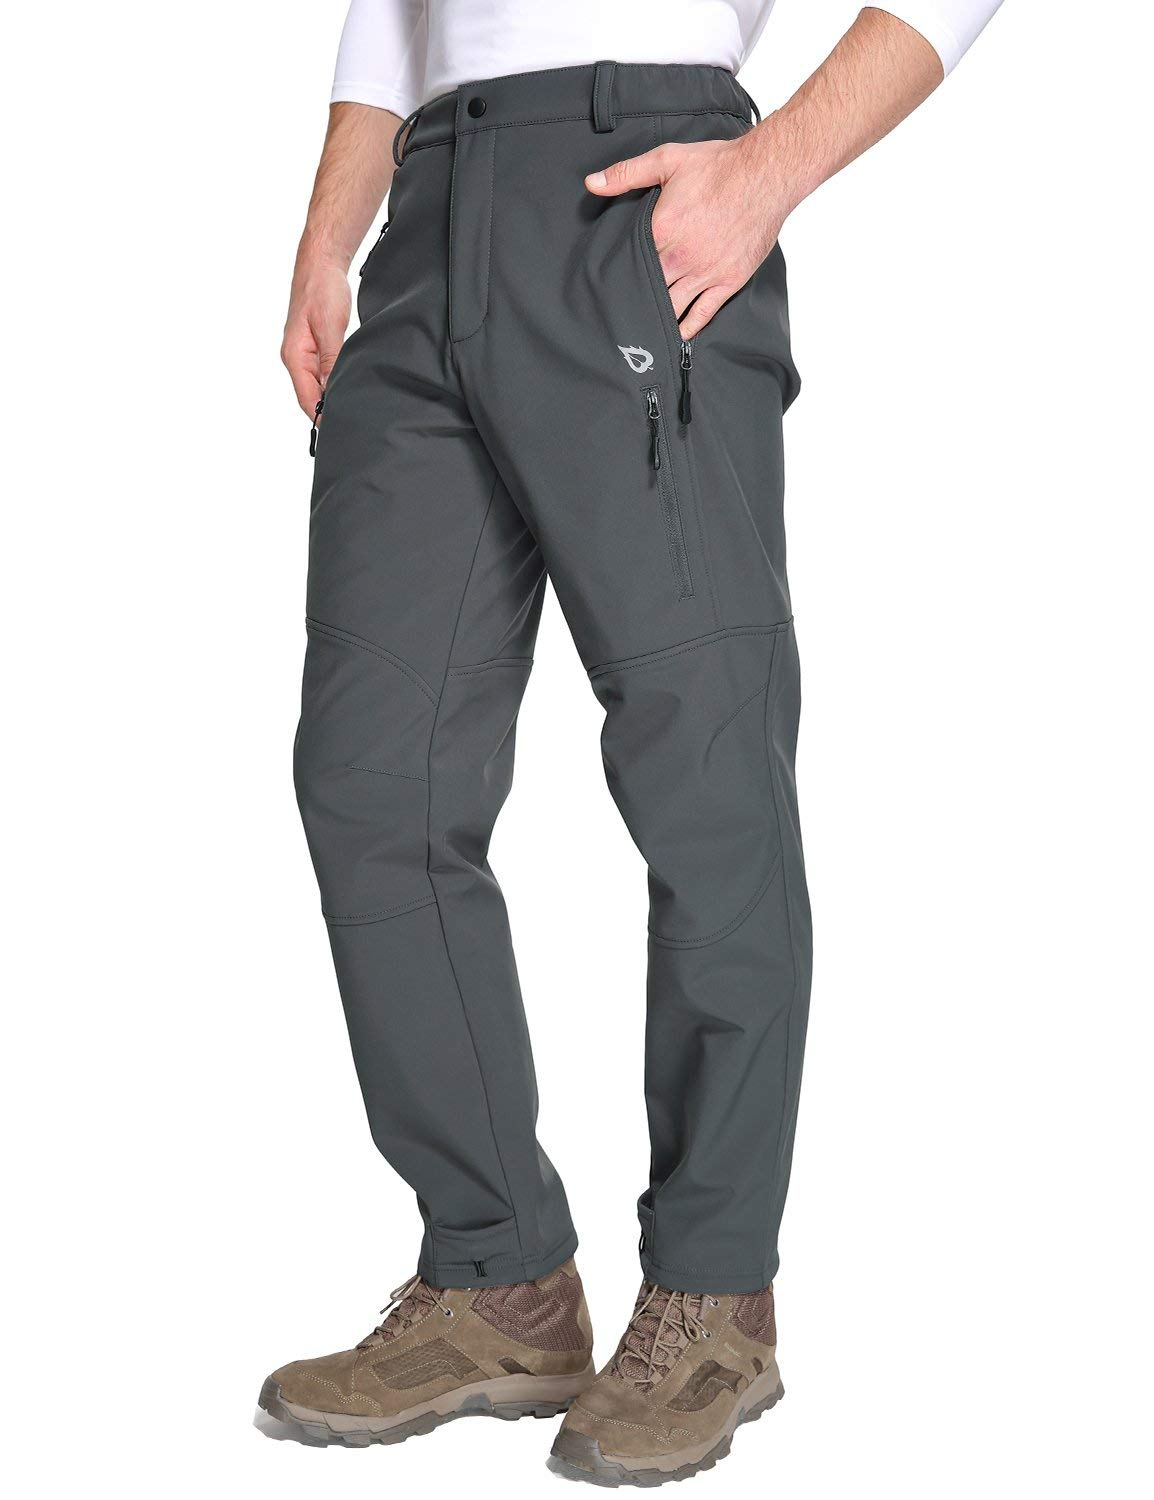 Baleaf Men/'s Winter Hiking Ski Pants Mountain Trousers Fleece-Lined Water-Resistant Windproof Insulated